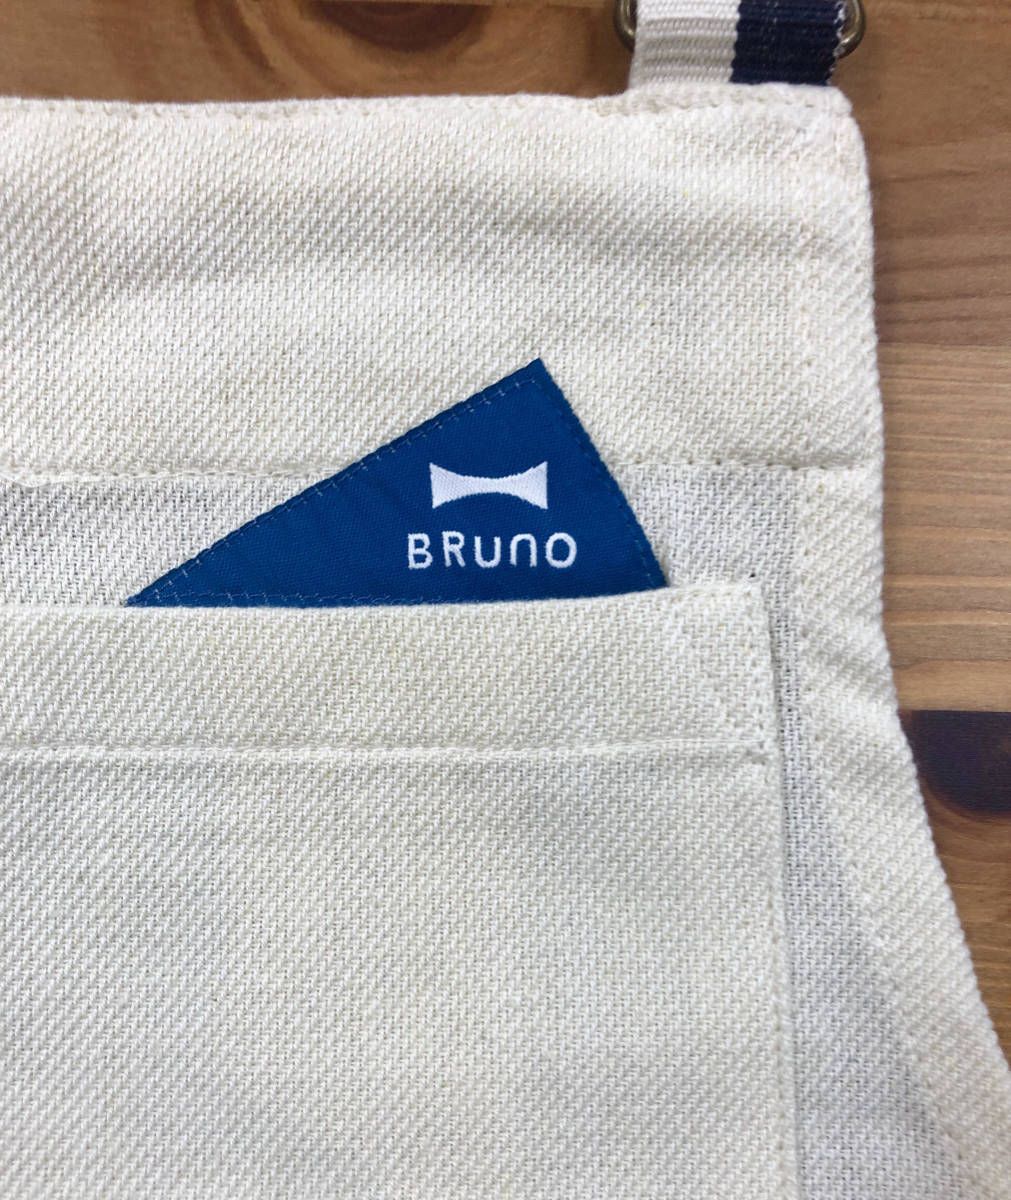 Apron brand Tag Up